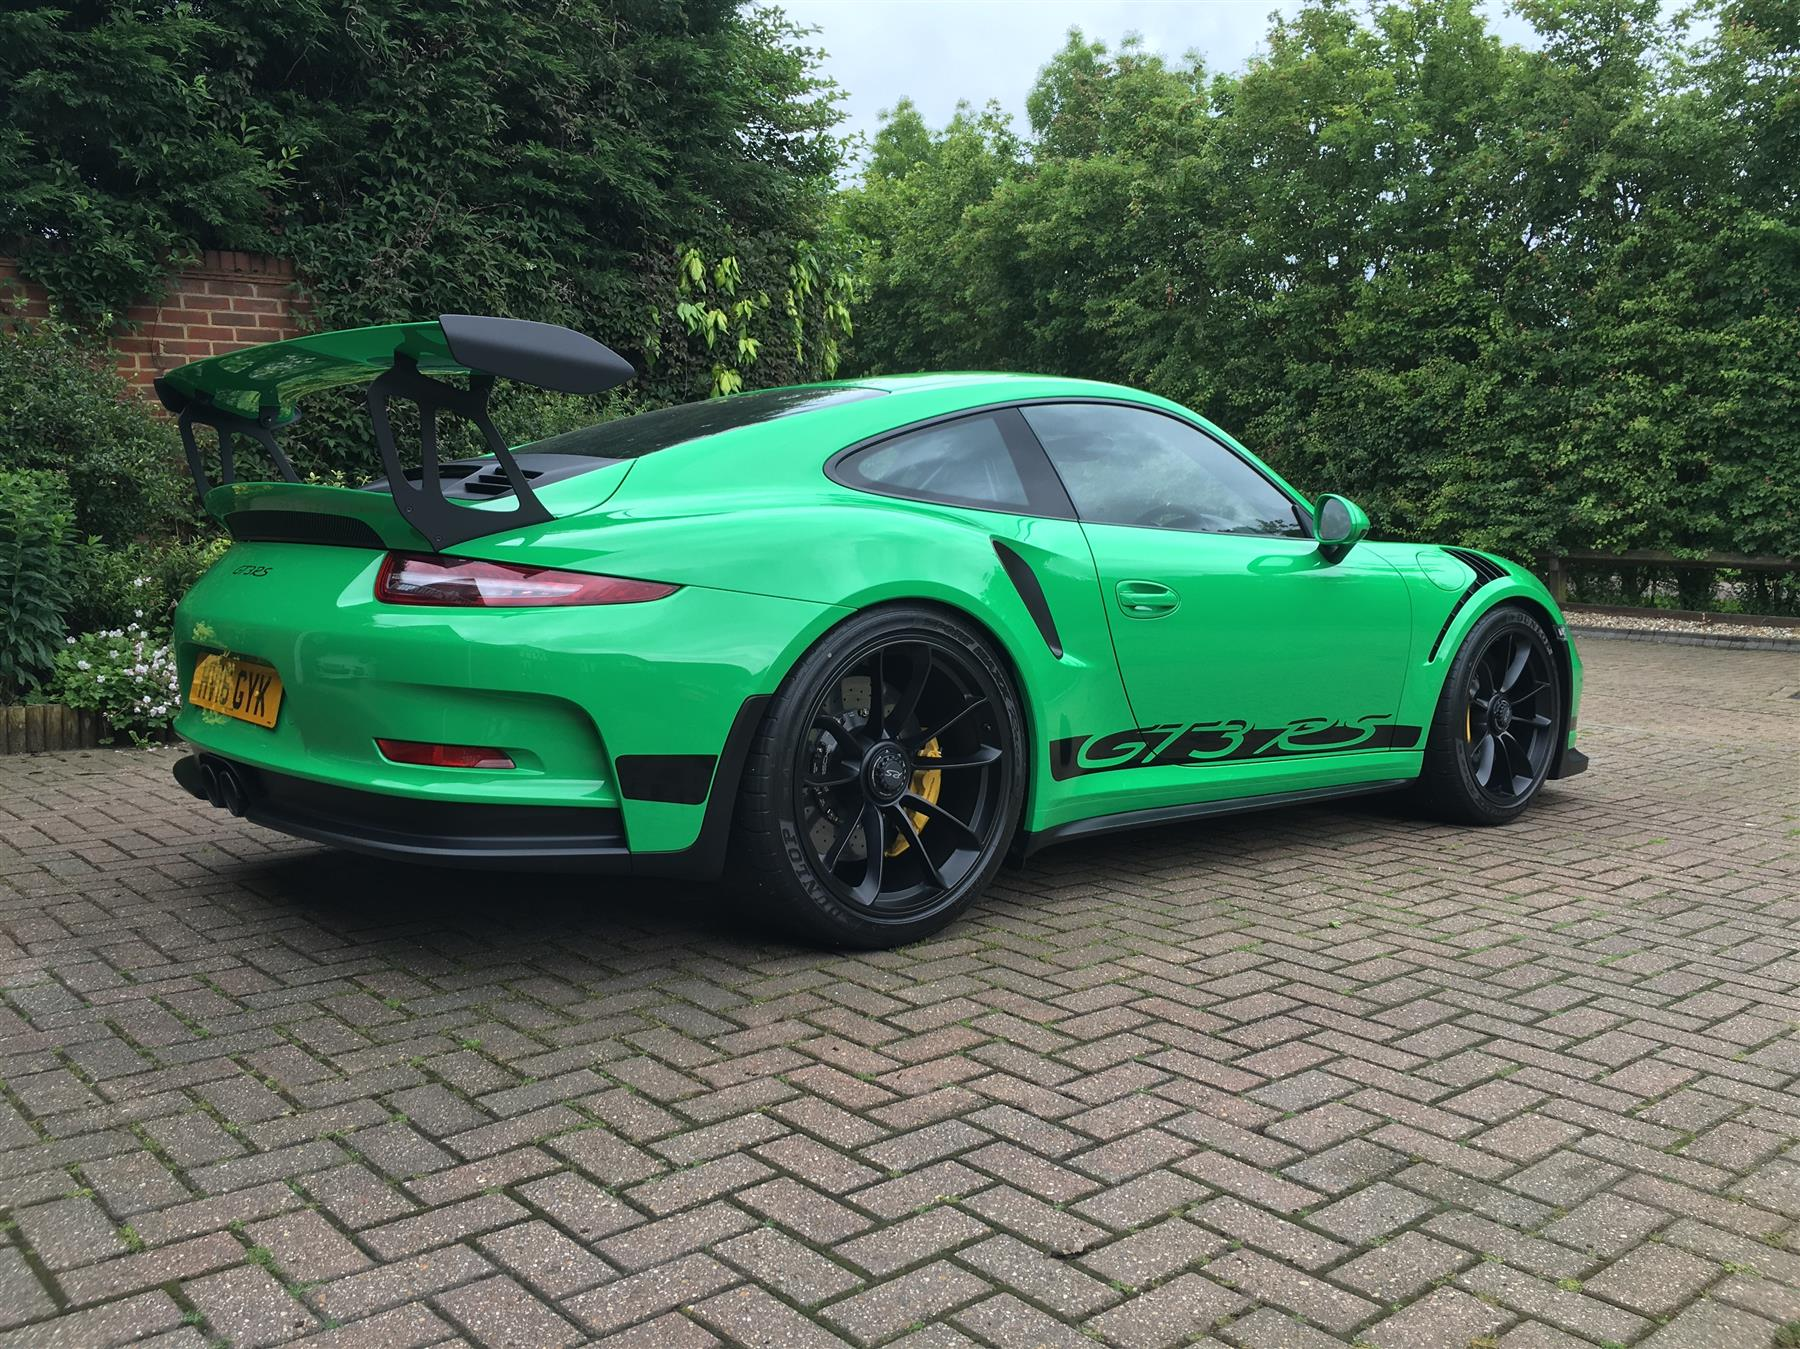 2016 rs green porsche 911 gt3 rs for sale at 321 000 in. Black Bedroom Furniture Sets. Home Design Ideas